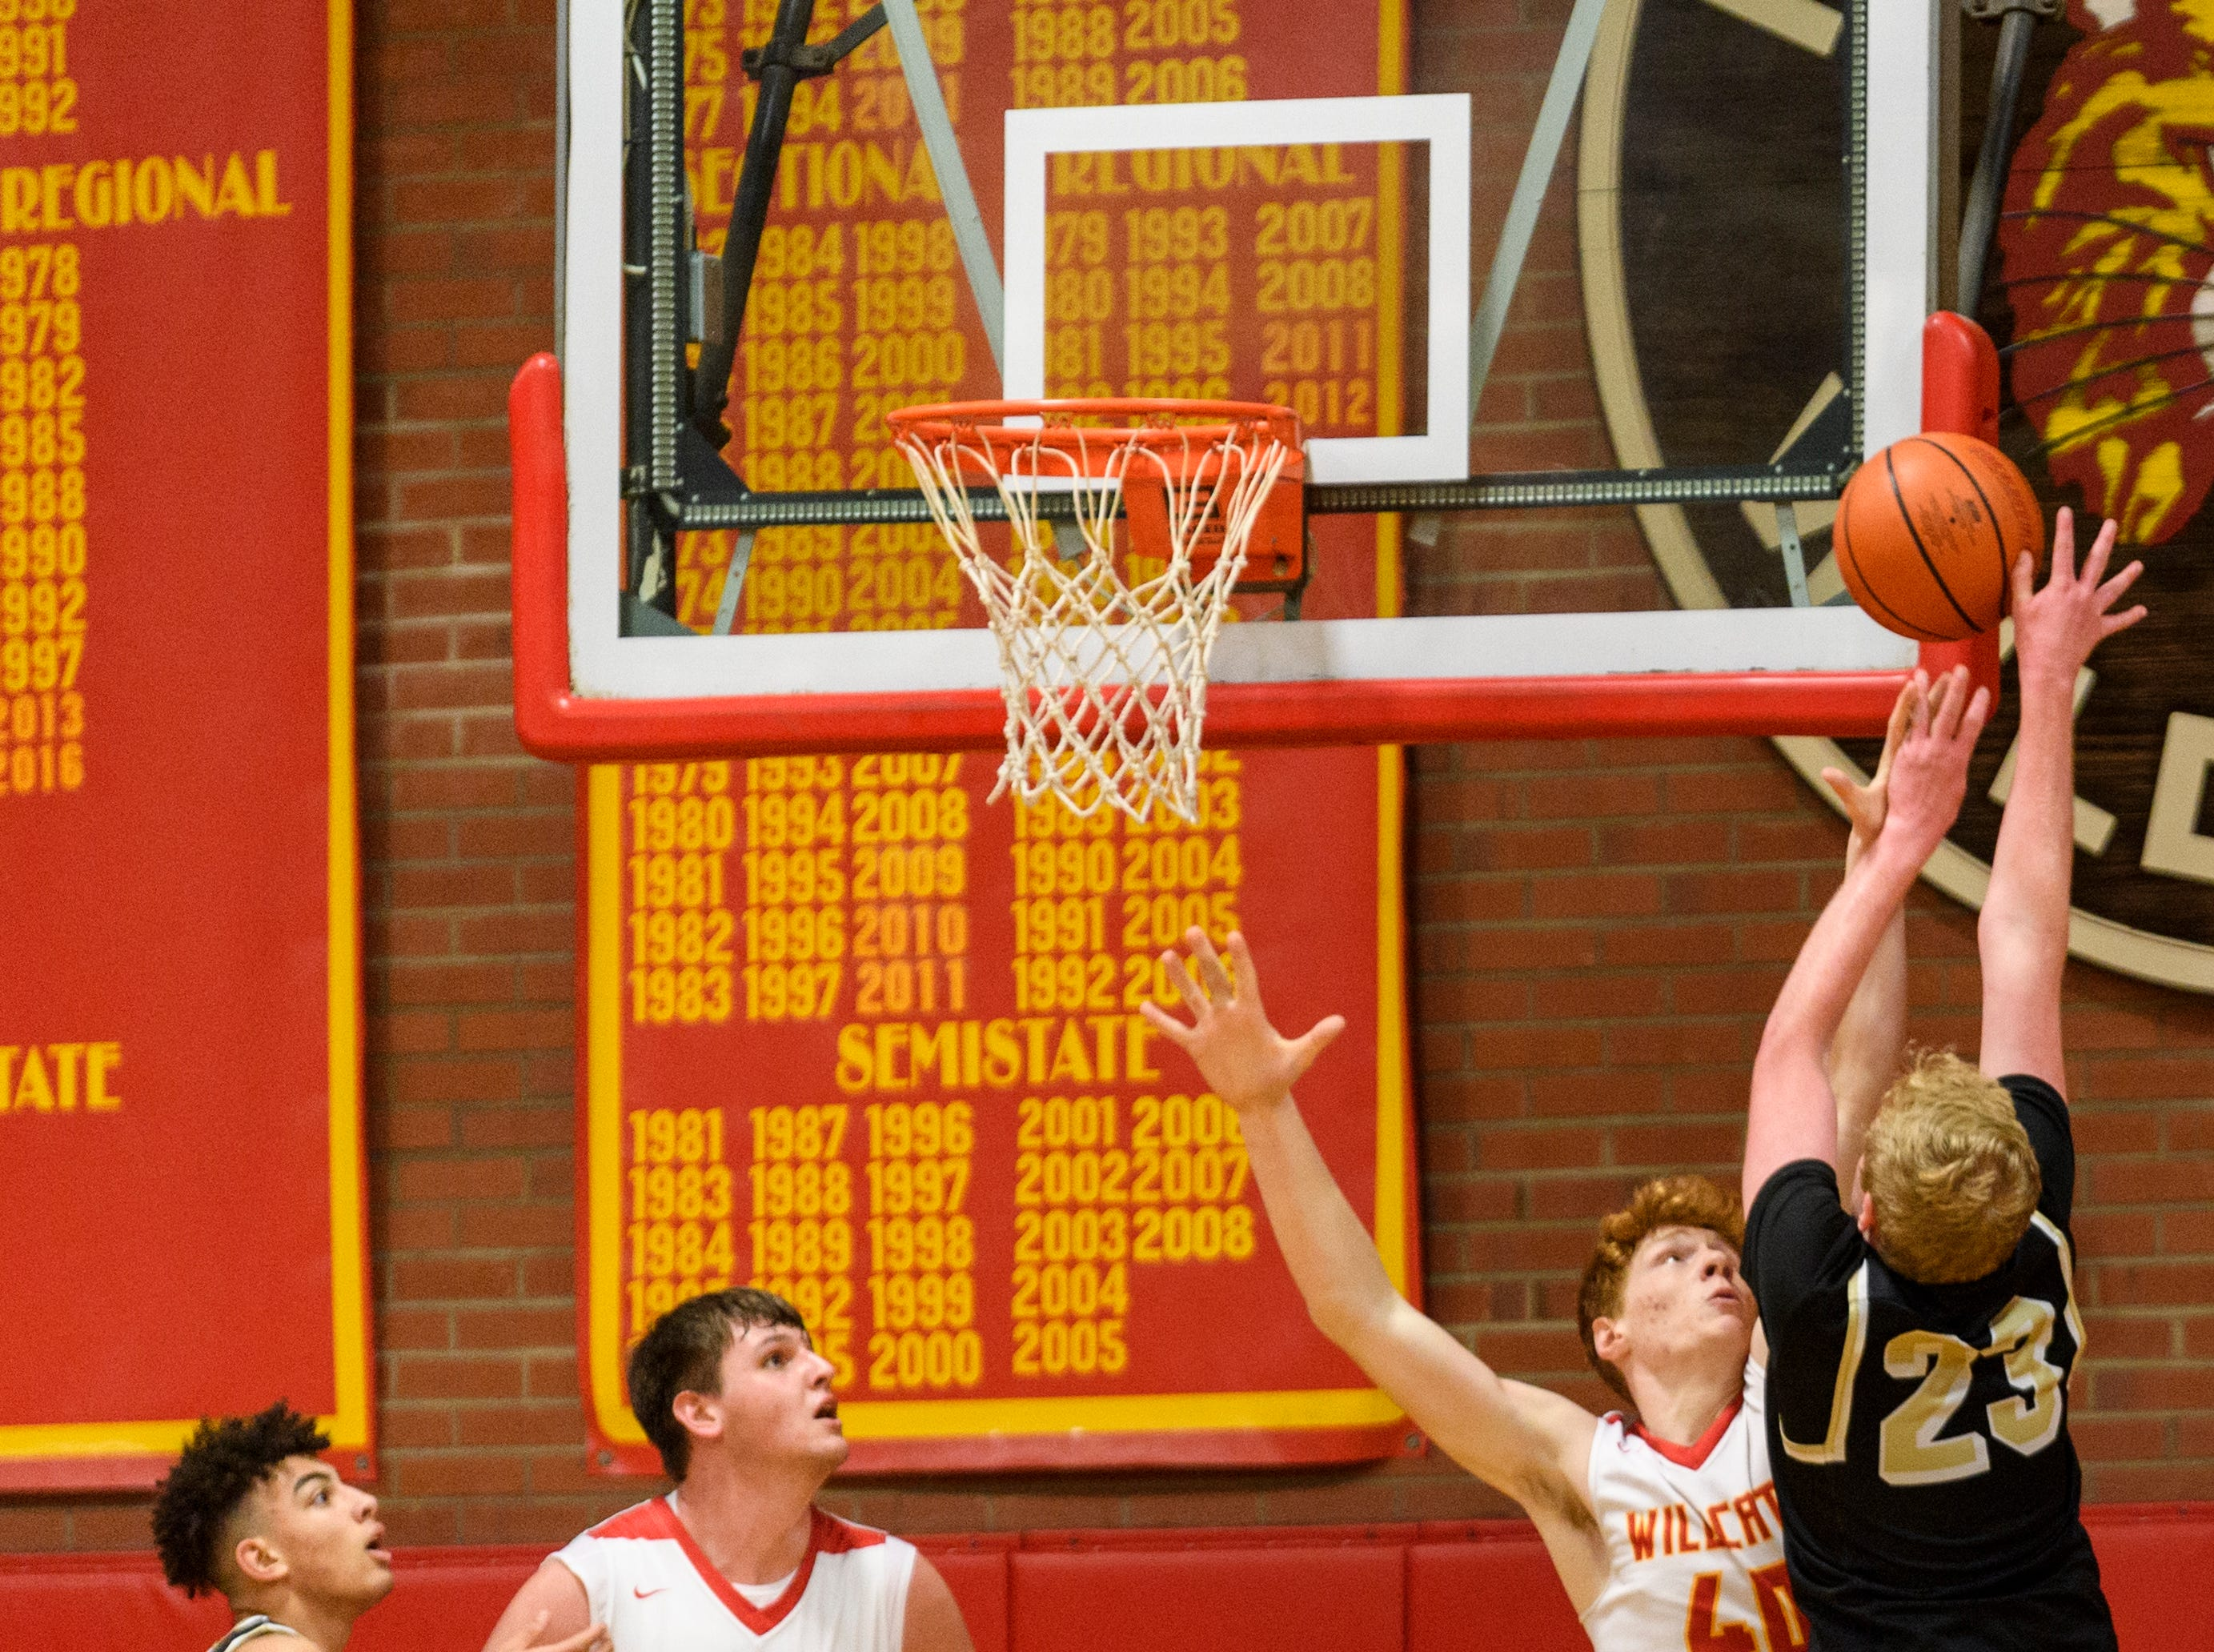 Mater Dei's Alex Money (40) blocks Boonville's Hunter Bruce (23) from the net as Mater Dei's Logan Carter (23) guards Boonville's Devin Mockobee (5) during the first quarter at Mater Dei High School in Evansville, Ind., Saturday, Jan. 5, 2019. The Wildcats defeated the Pioneers, 93-65.